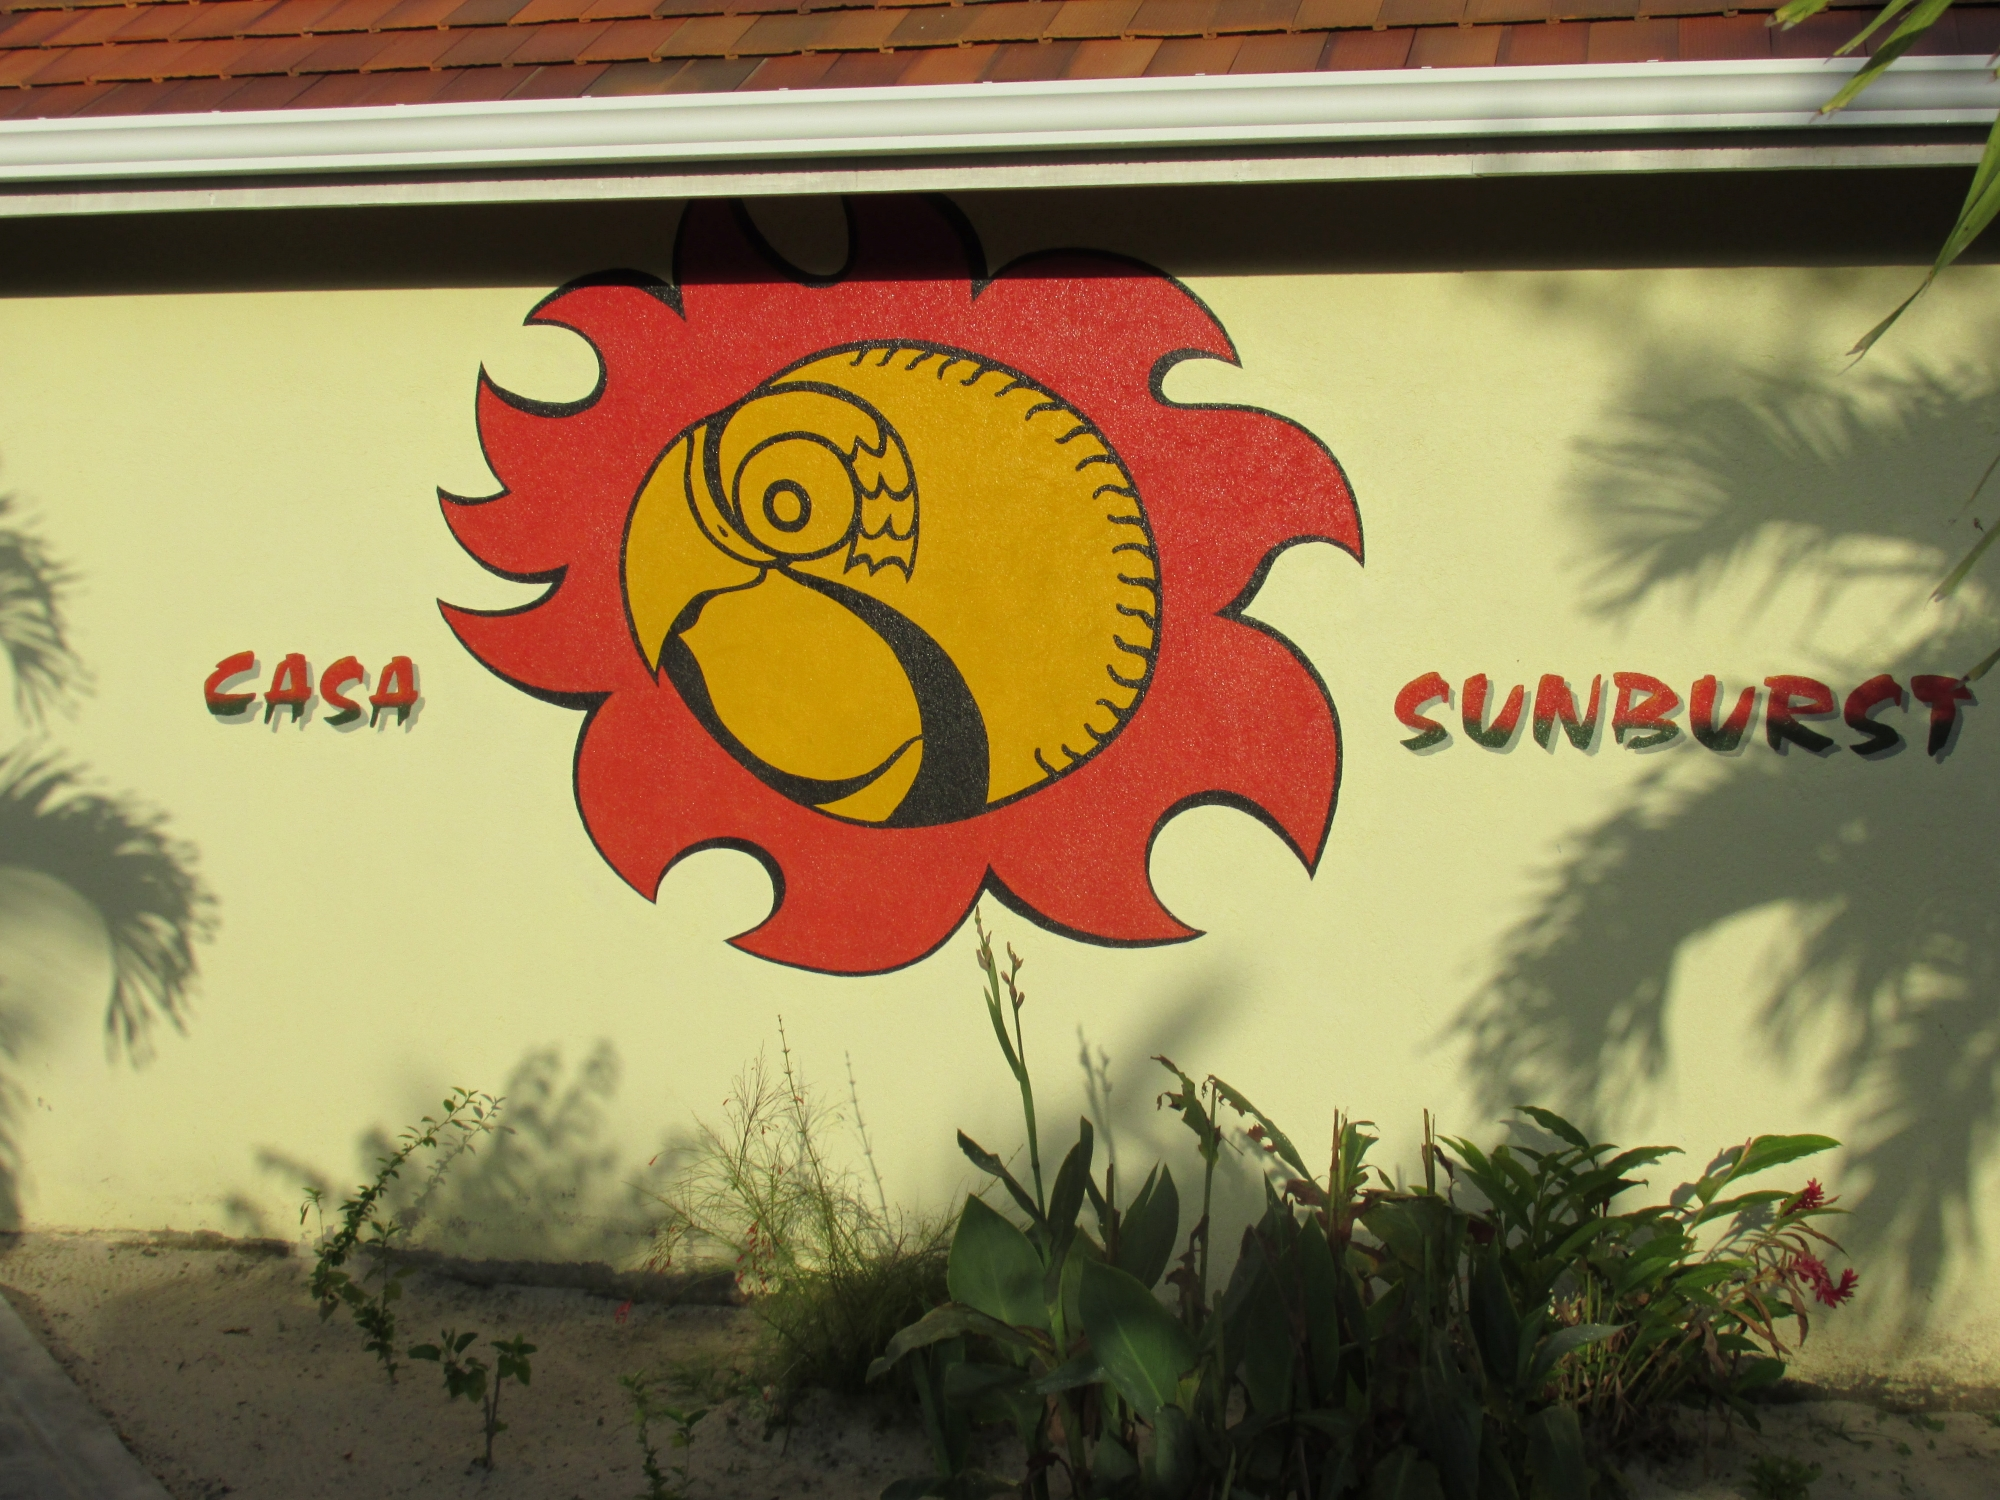 Welcome to Casa Sunburst